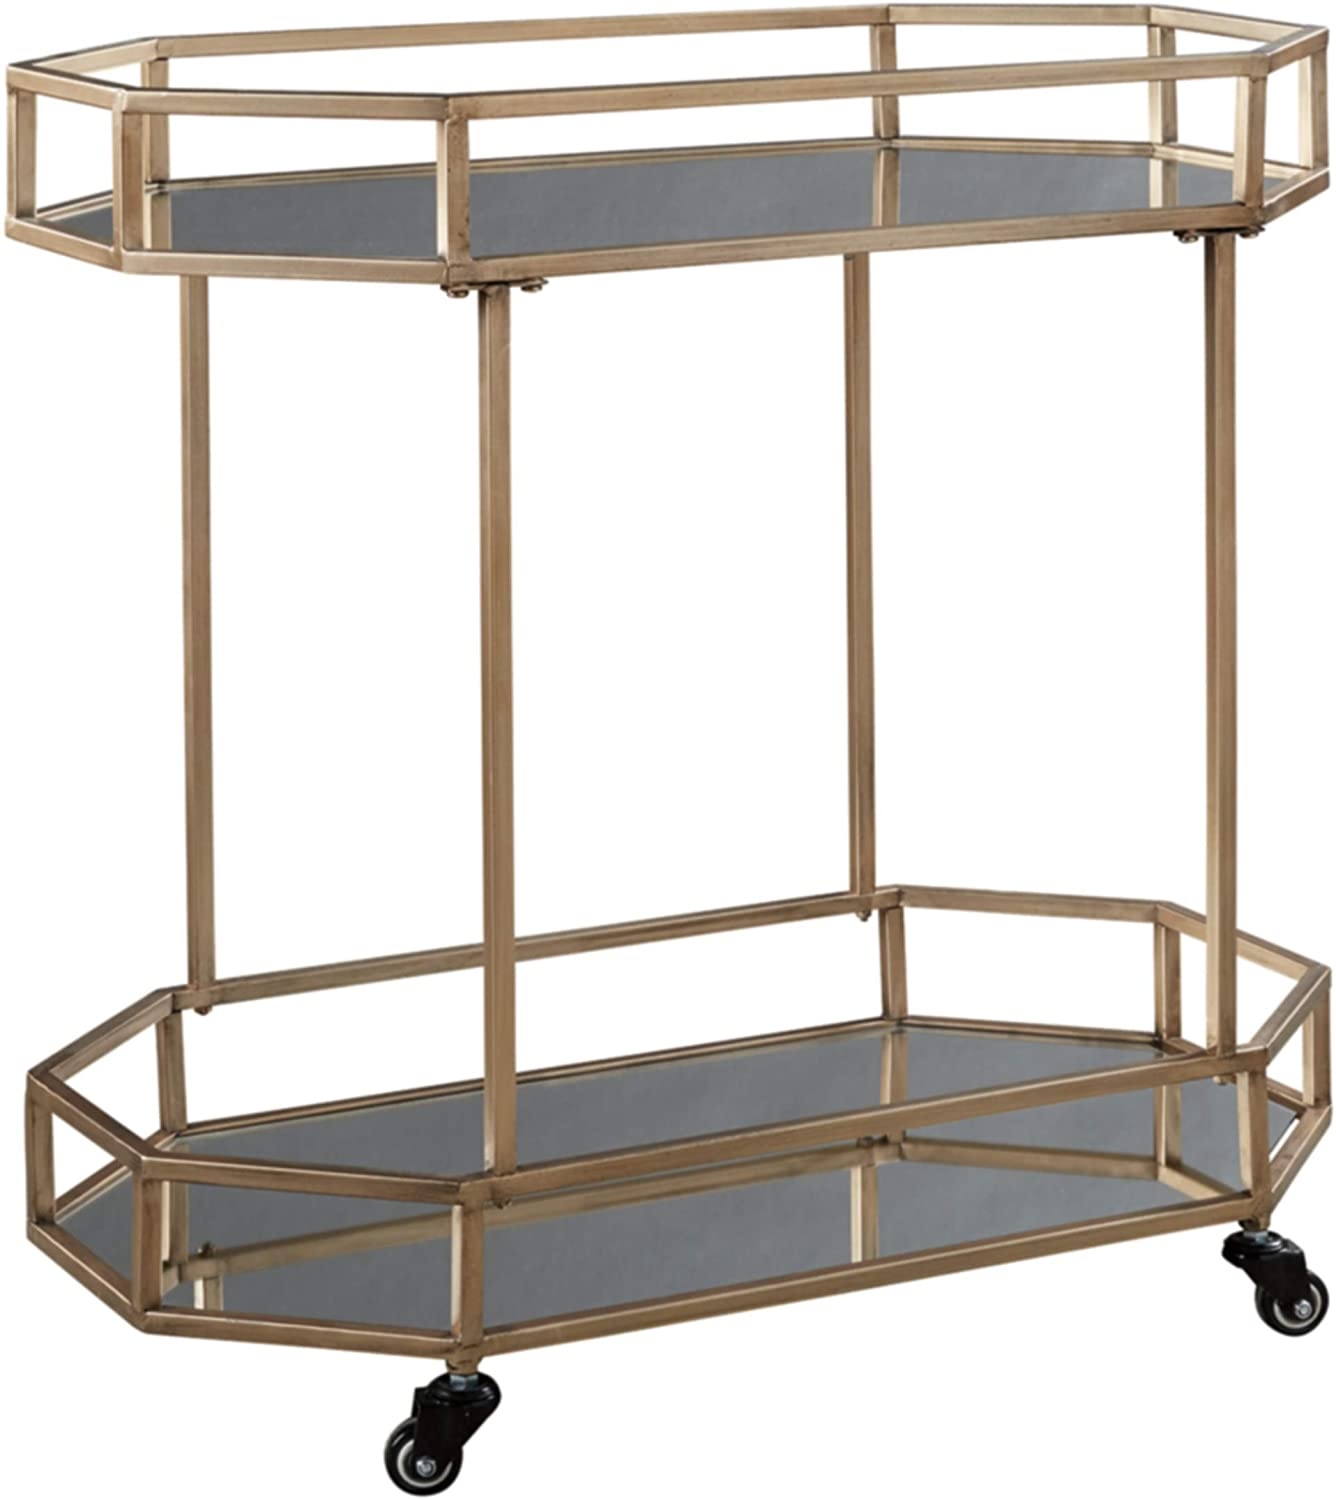 Signature Design by Ashley Daymont Contemporary Glam Bar Cart, Gold Finish